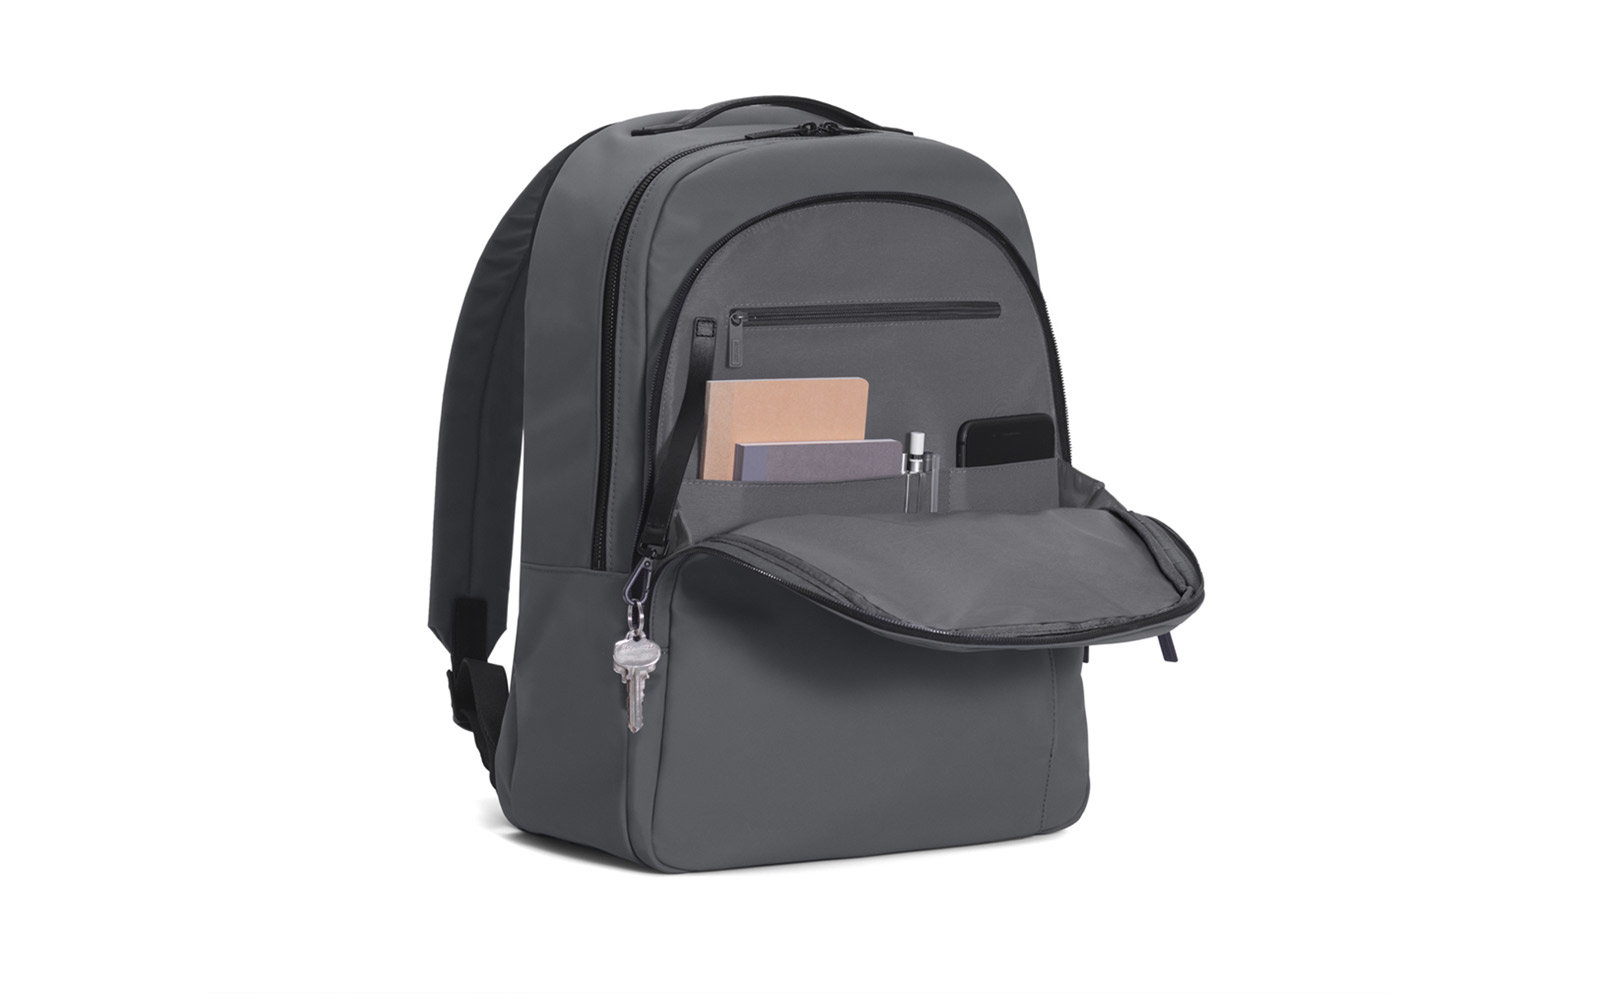 ca2dba2343 Away Backpack. away travel backpack. Courtesy of Away